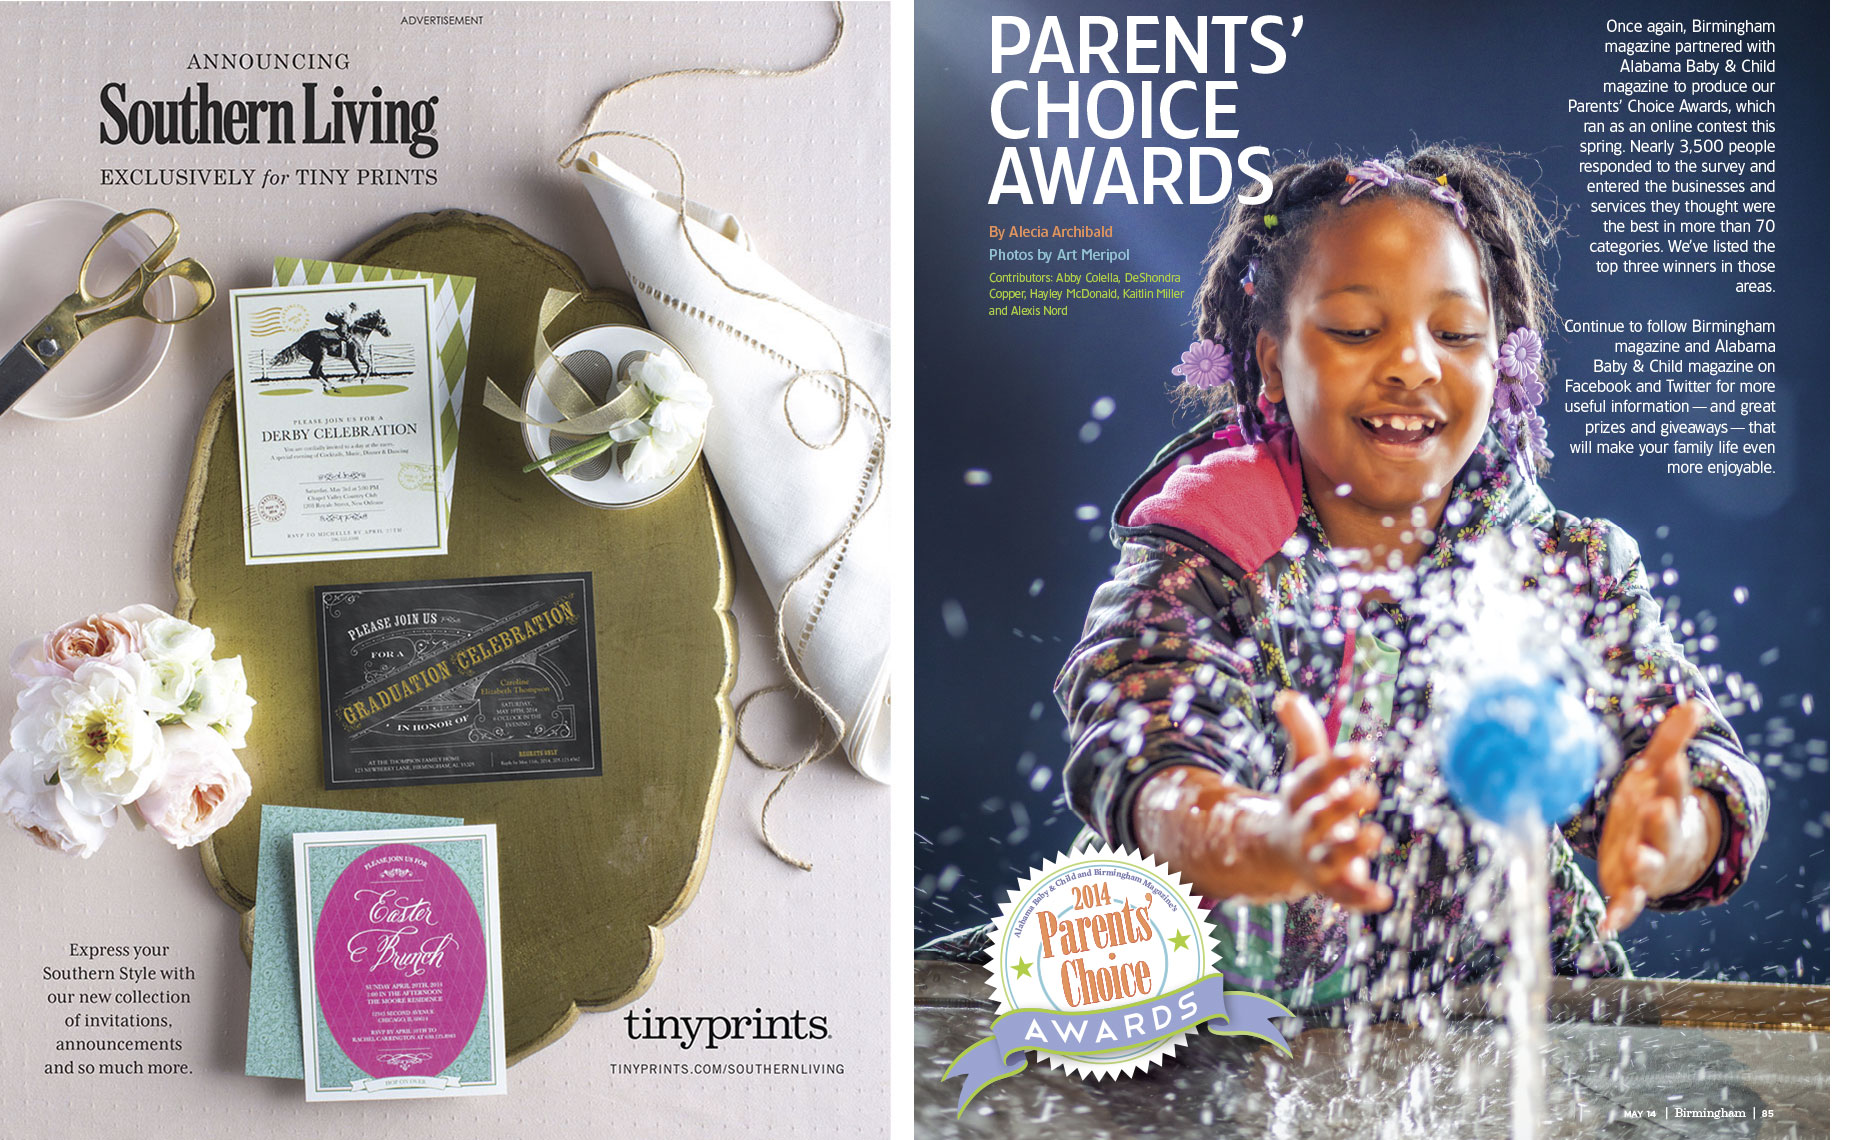 tinyprints-parentschoice